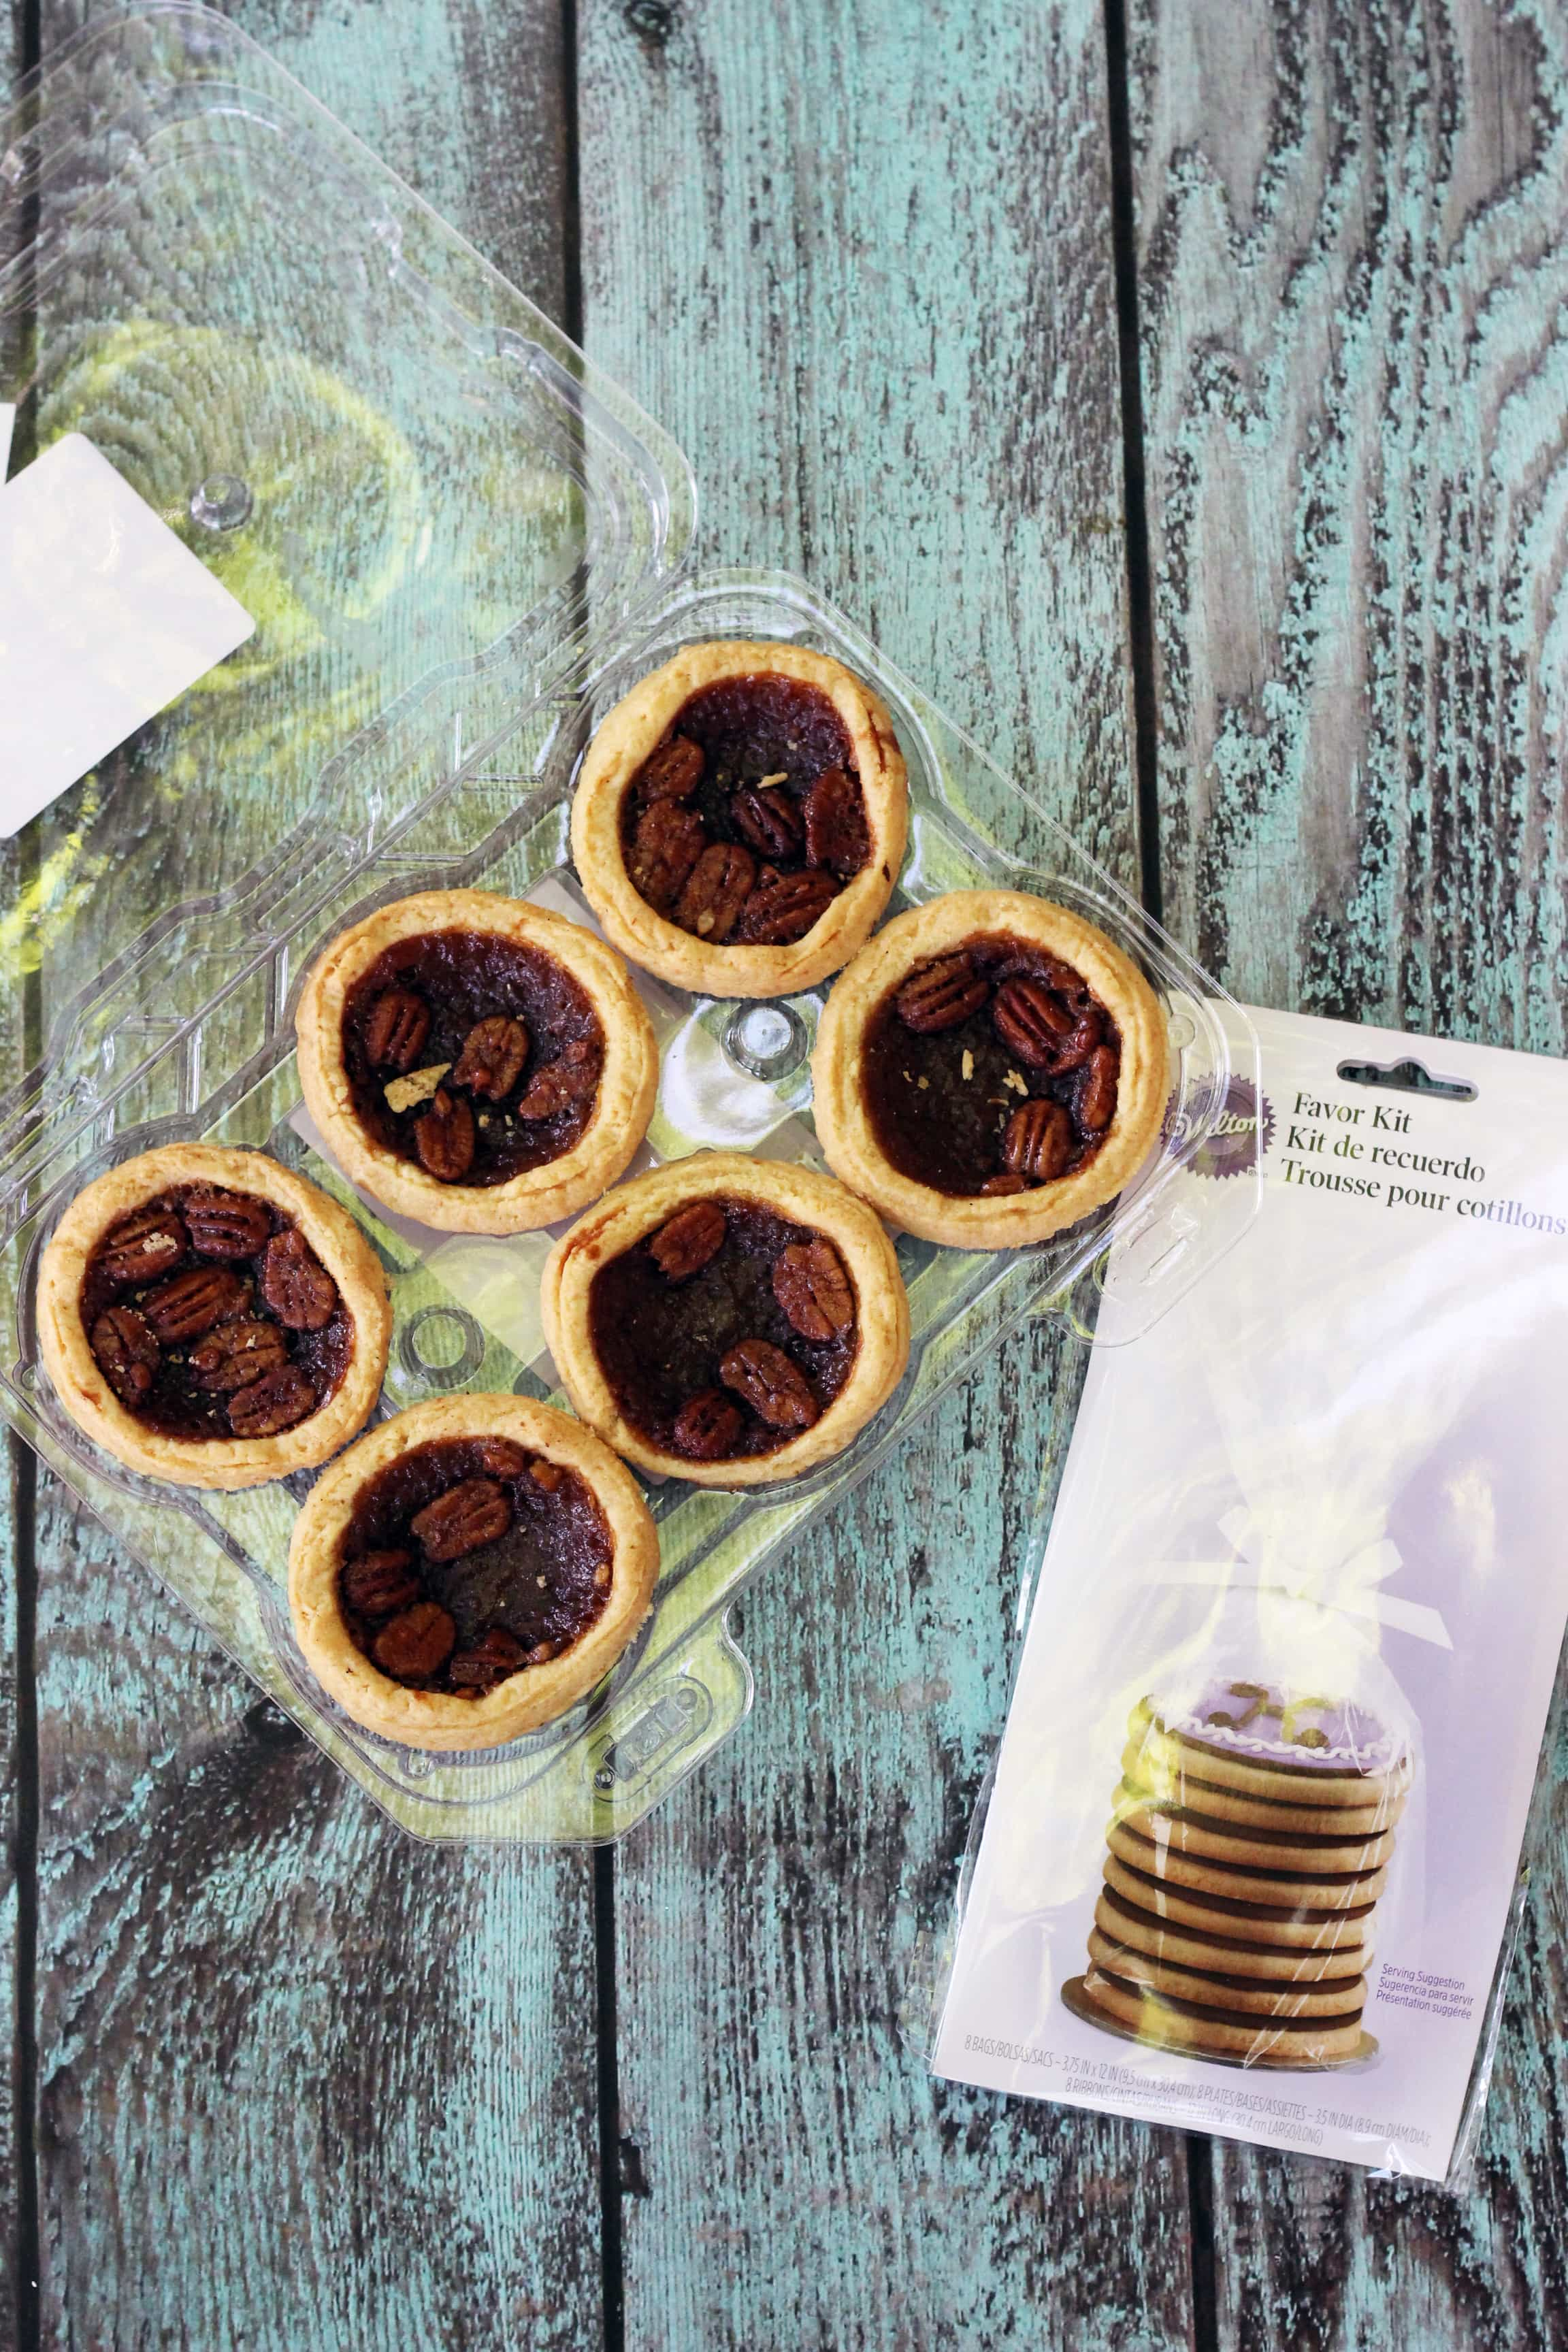 Homemade thank you gifts don't have to be complicated. Check out these easy gifts using mini pies from the bakery and a free printable!